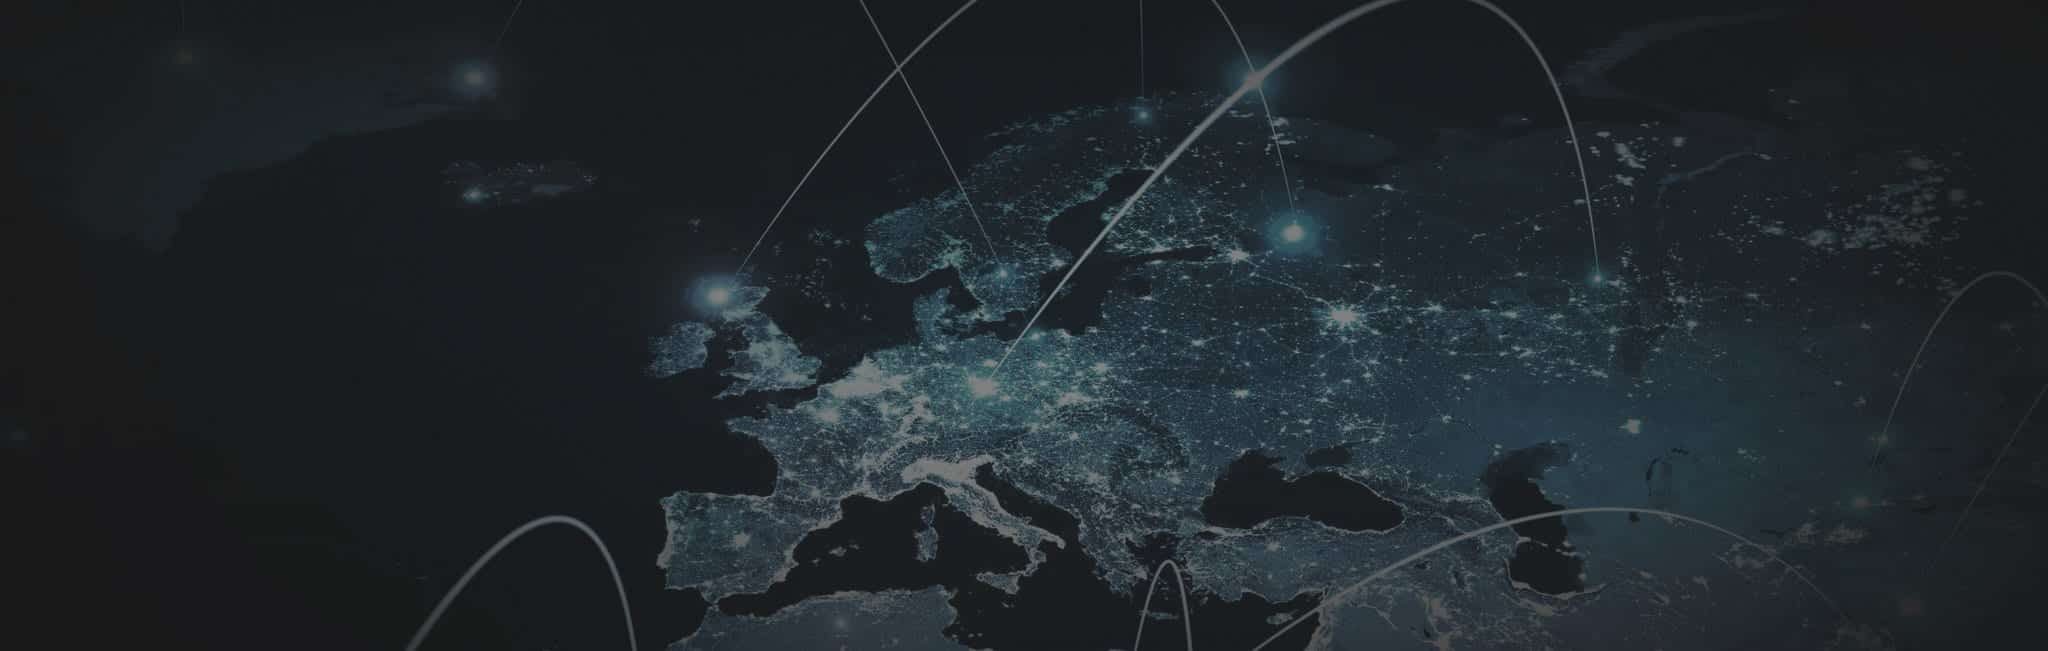 Map of europe at night with laser lines